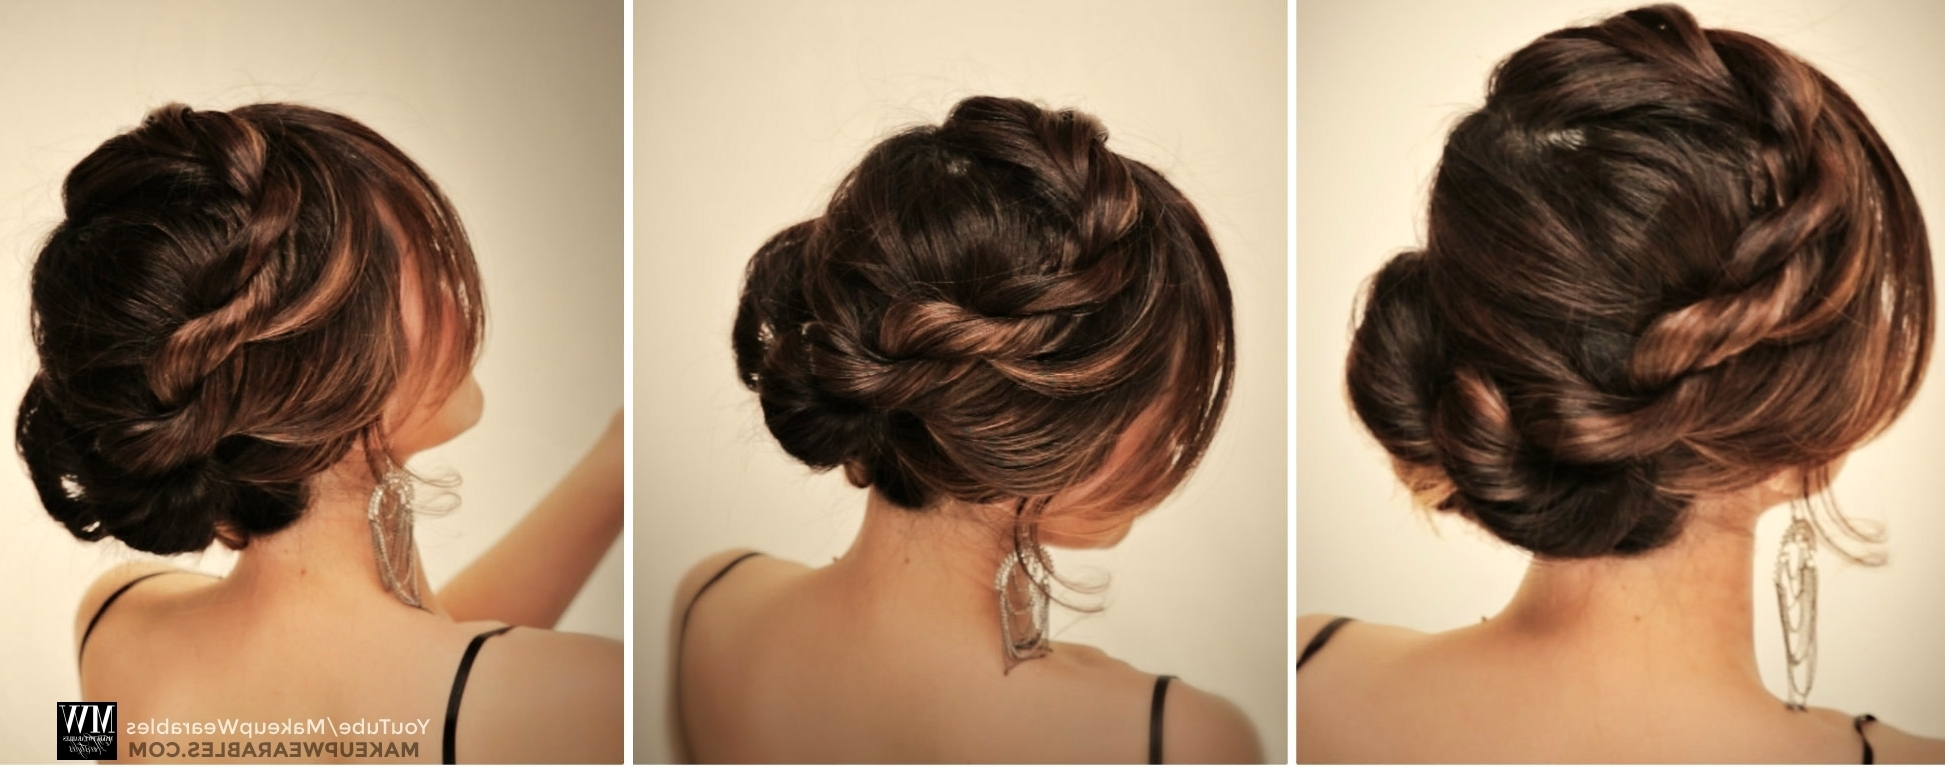 How To: 5 Amazingly Cute + Easy Hairstyles With A Simple Twist Throughout Messy Hair Updo Hairstyles For Long Hair (View 2 of 15)